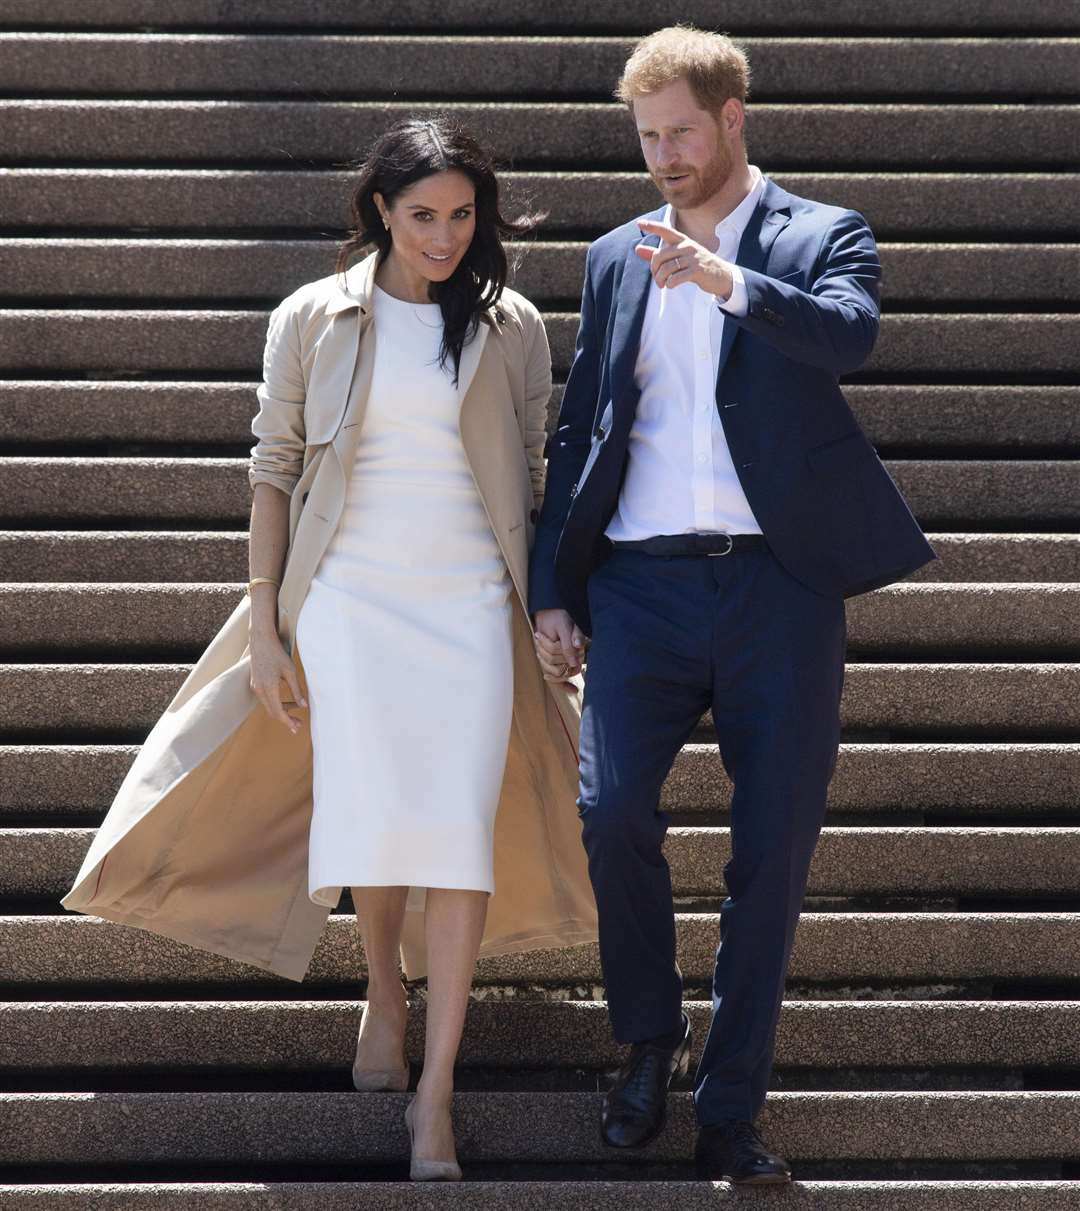 The Duke and Duchess of Sussex arrive for a walkabout outside the Sydney Opera House on the first day of their visit to Australia